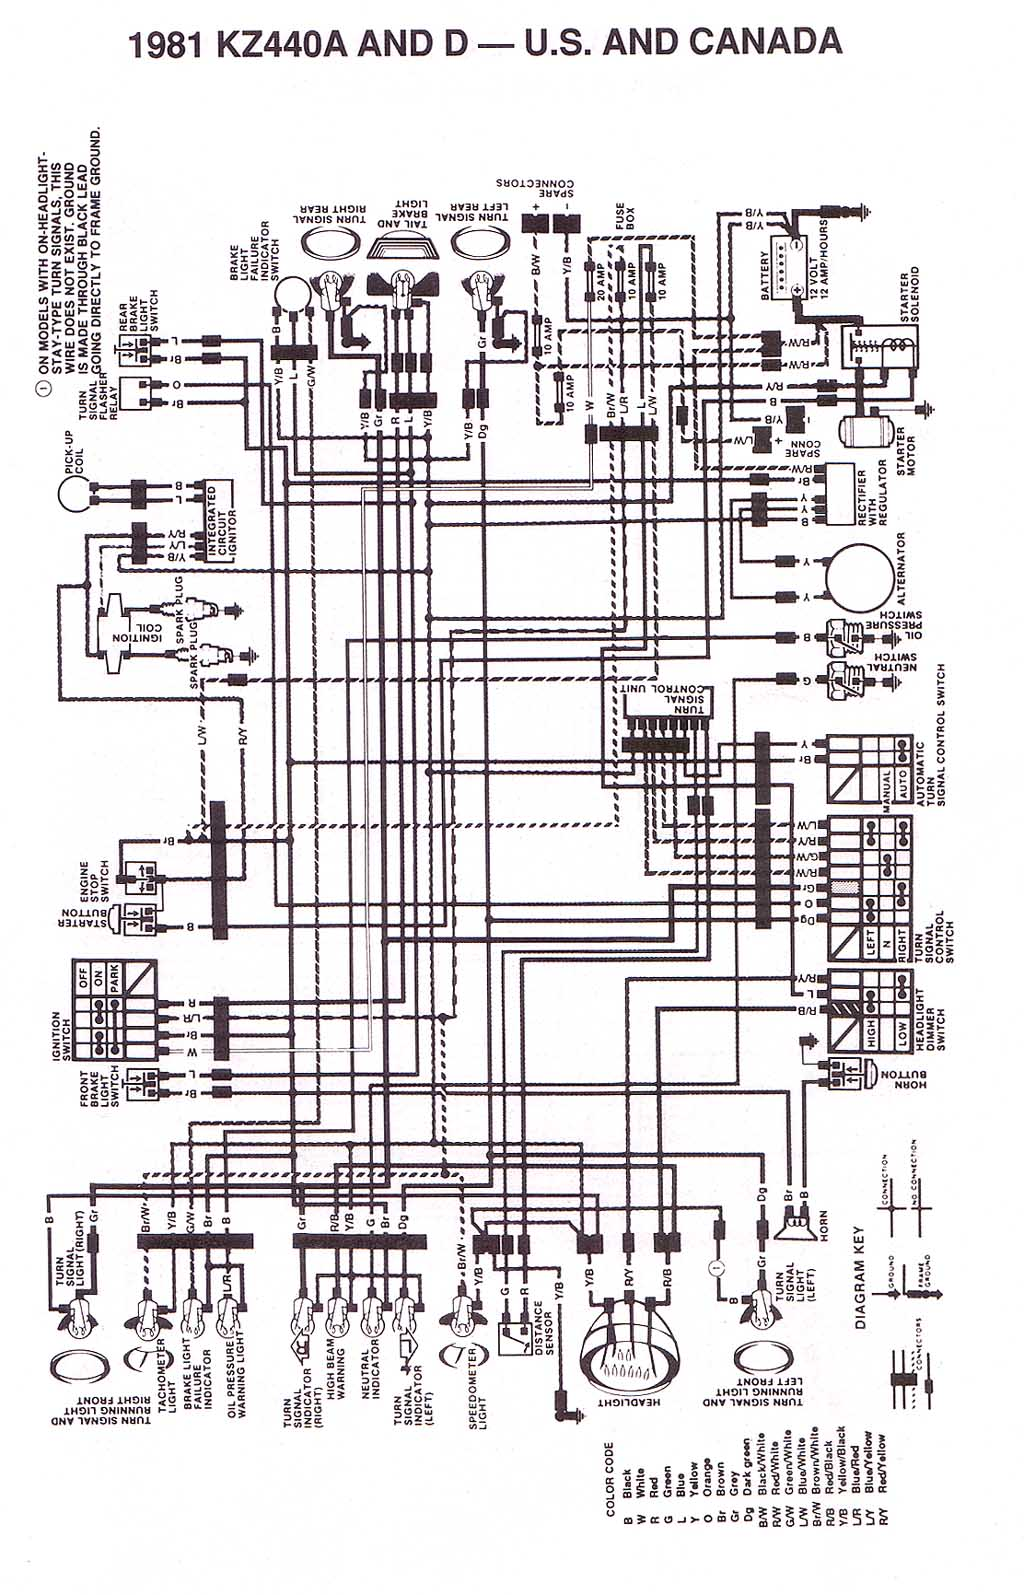 KZ440A and D wiring diagram %28US%29 1981 kawasaki ltd 440 rebuild thread page 5 barf bay area 1980 kawasaki 440 ltd wiring diagram at bayanpartner.co